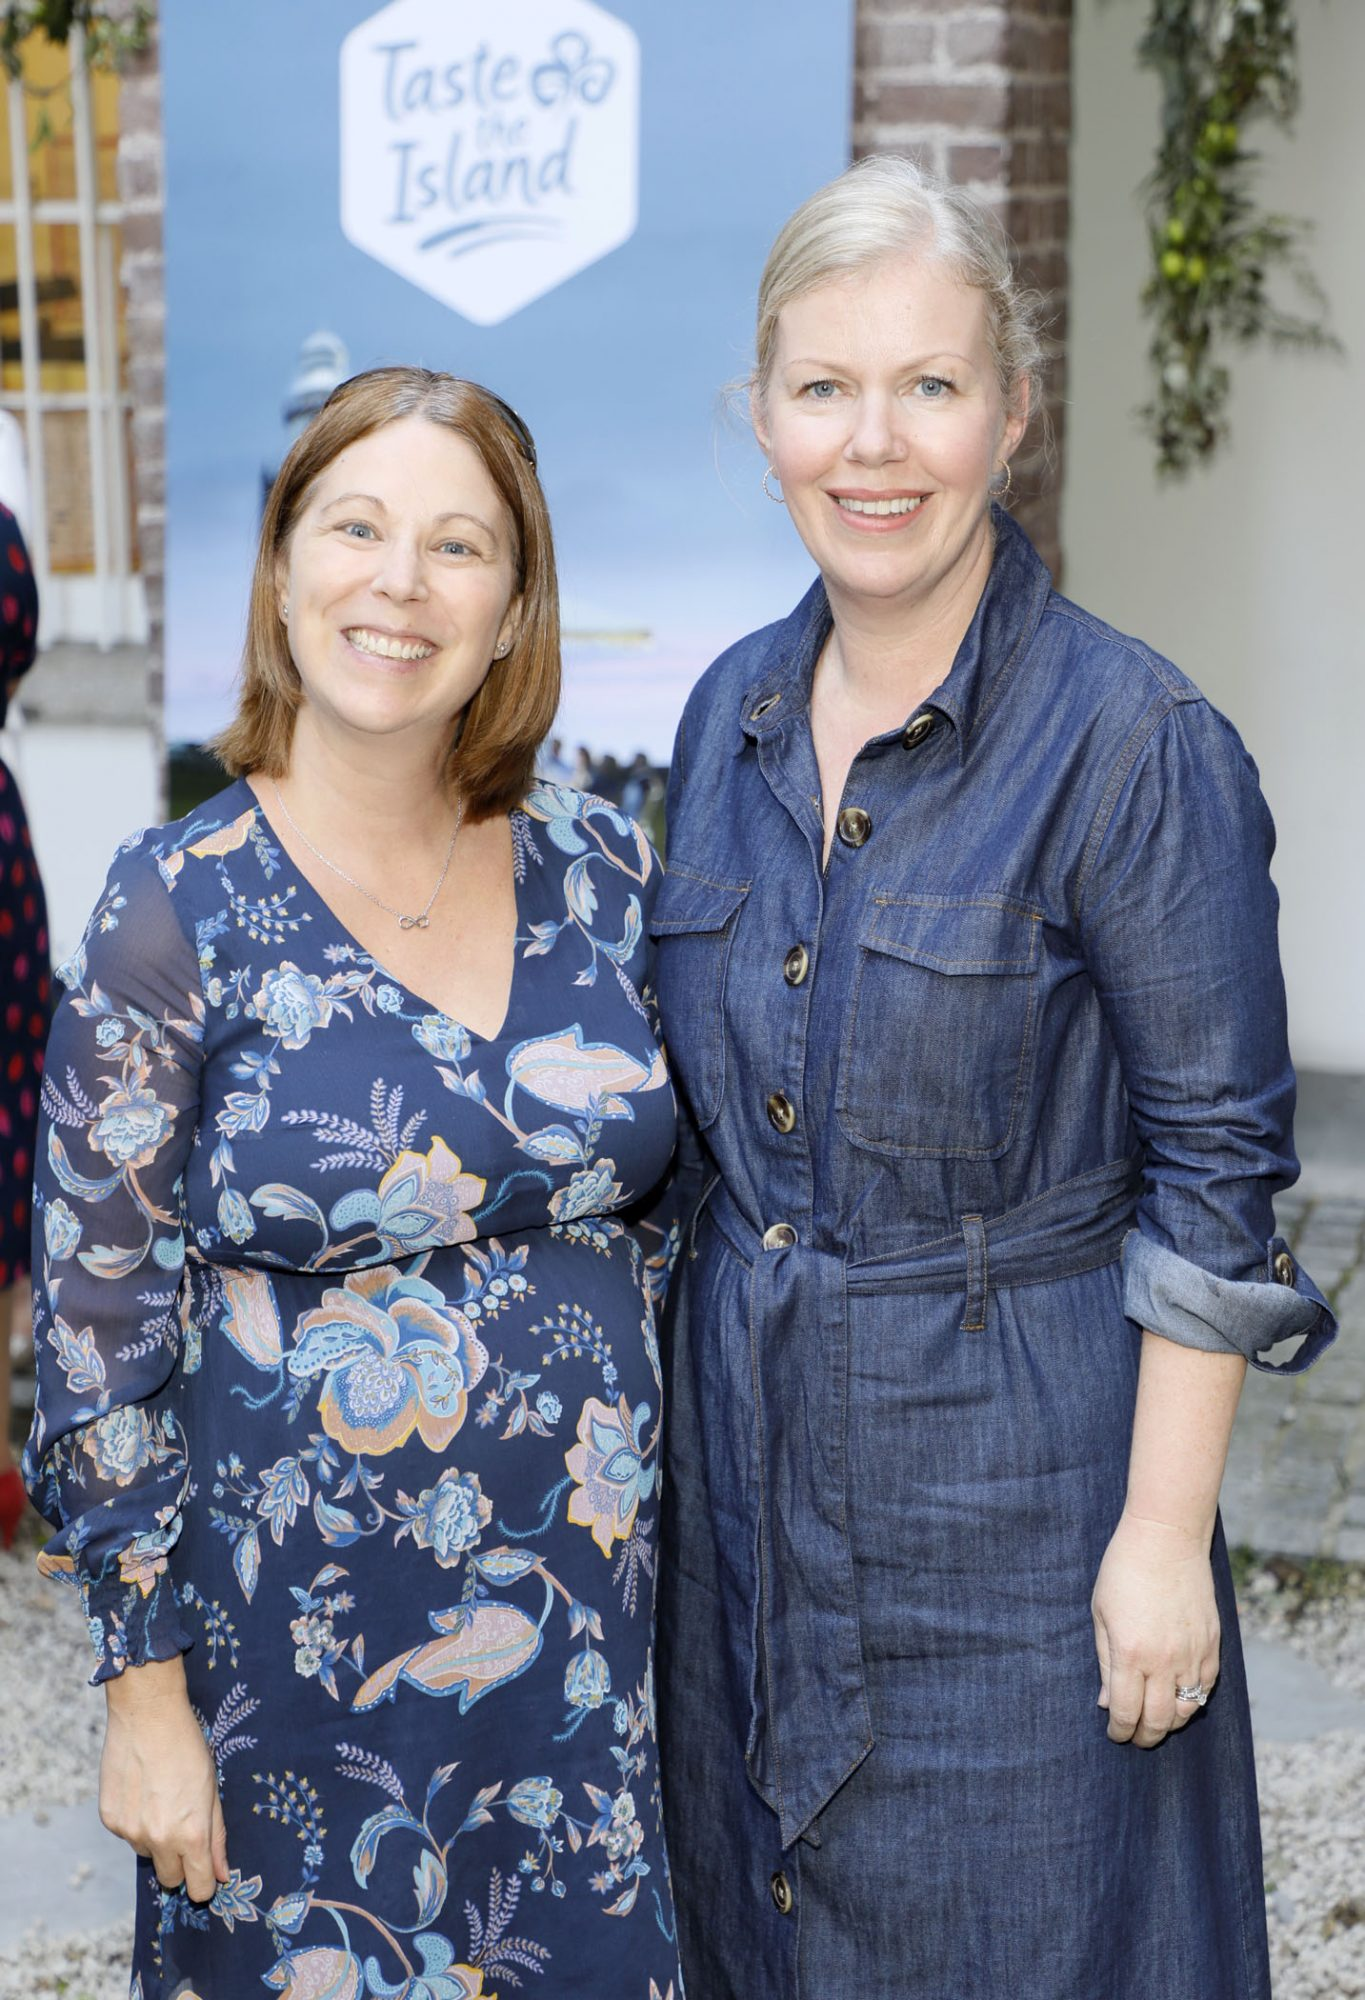 Gísele Mansfield and Maureen Bergin at the launch of Taste the Island, a 12 week celebration of Ireland's seasonal ingredients, adventurous tastes and bold experiences taking place this September, October and November. Photo: Kieran Harnett